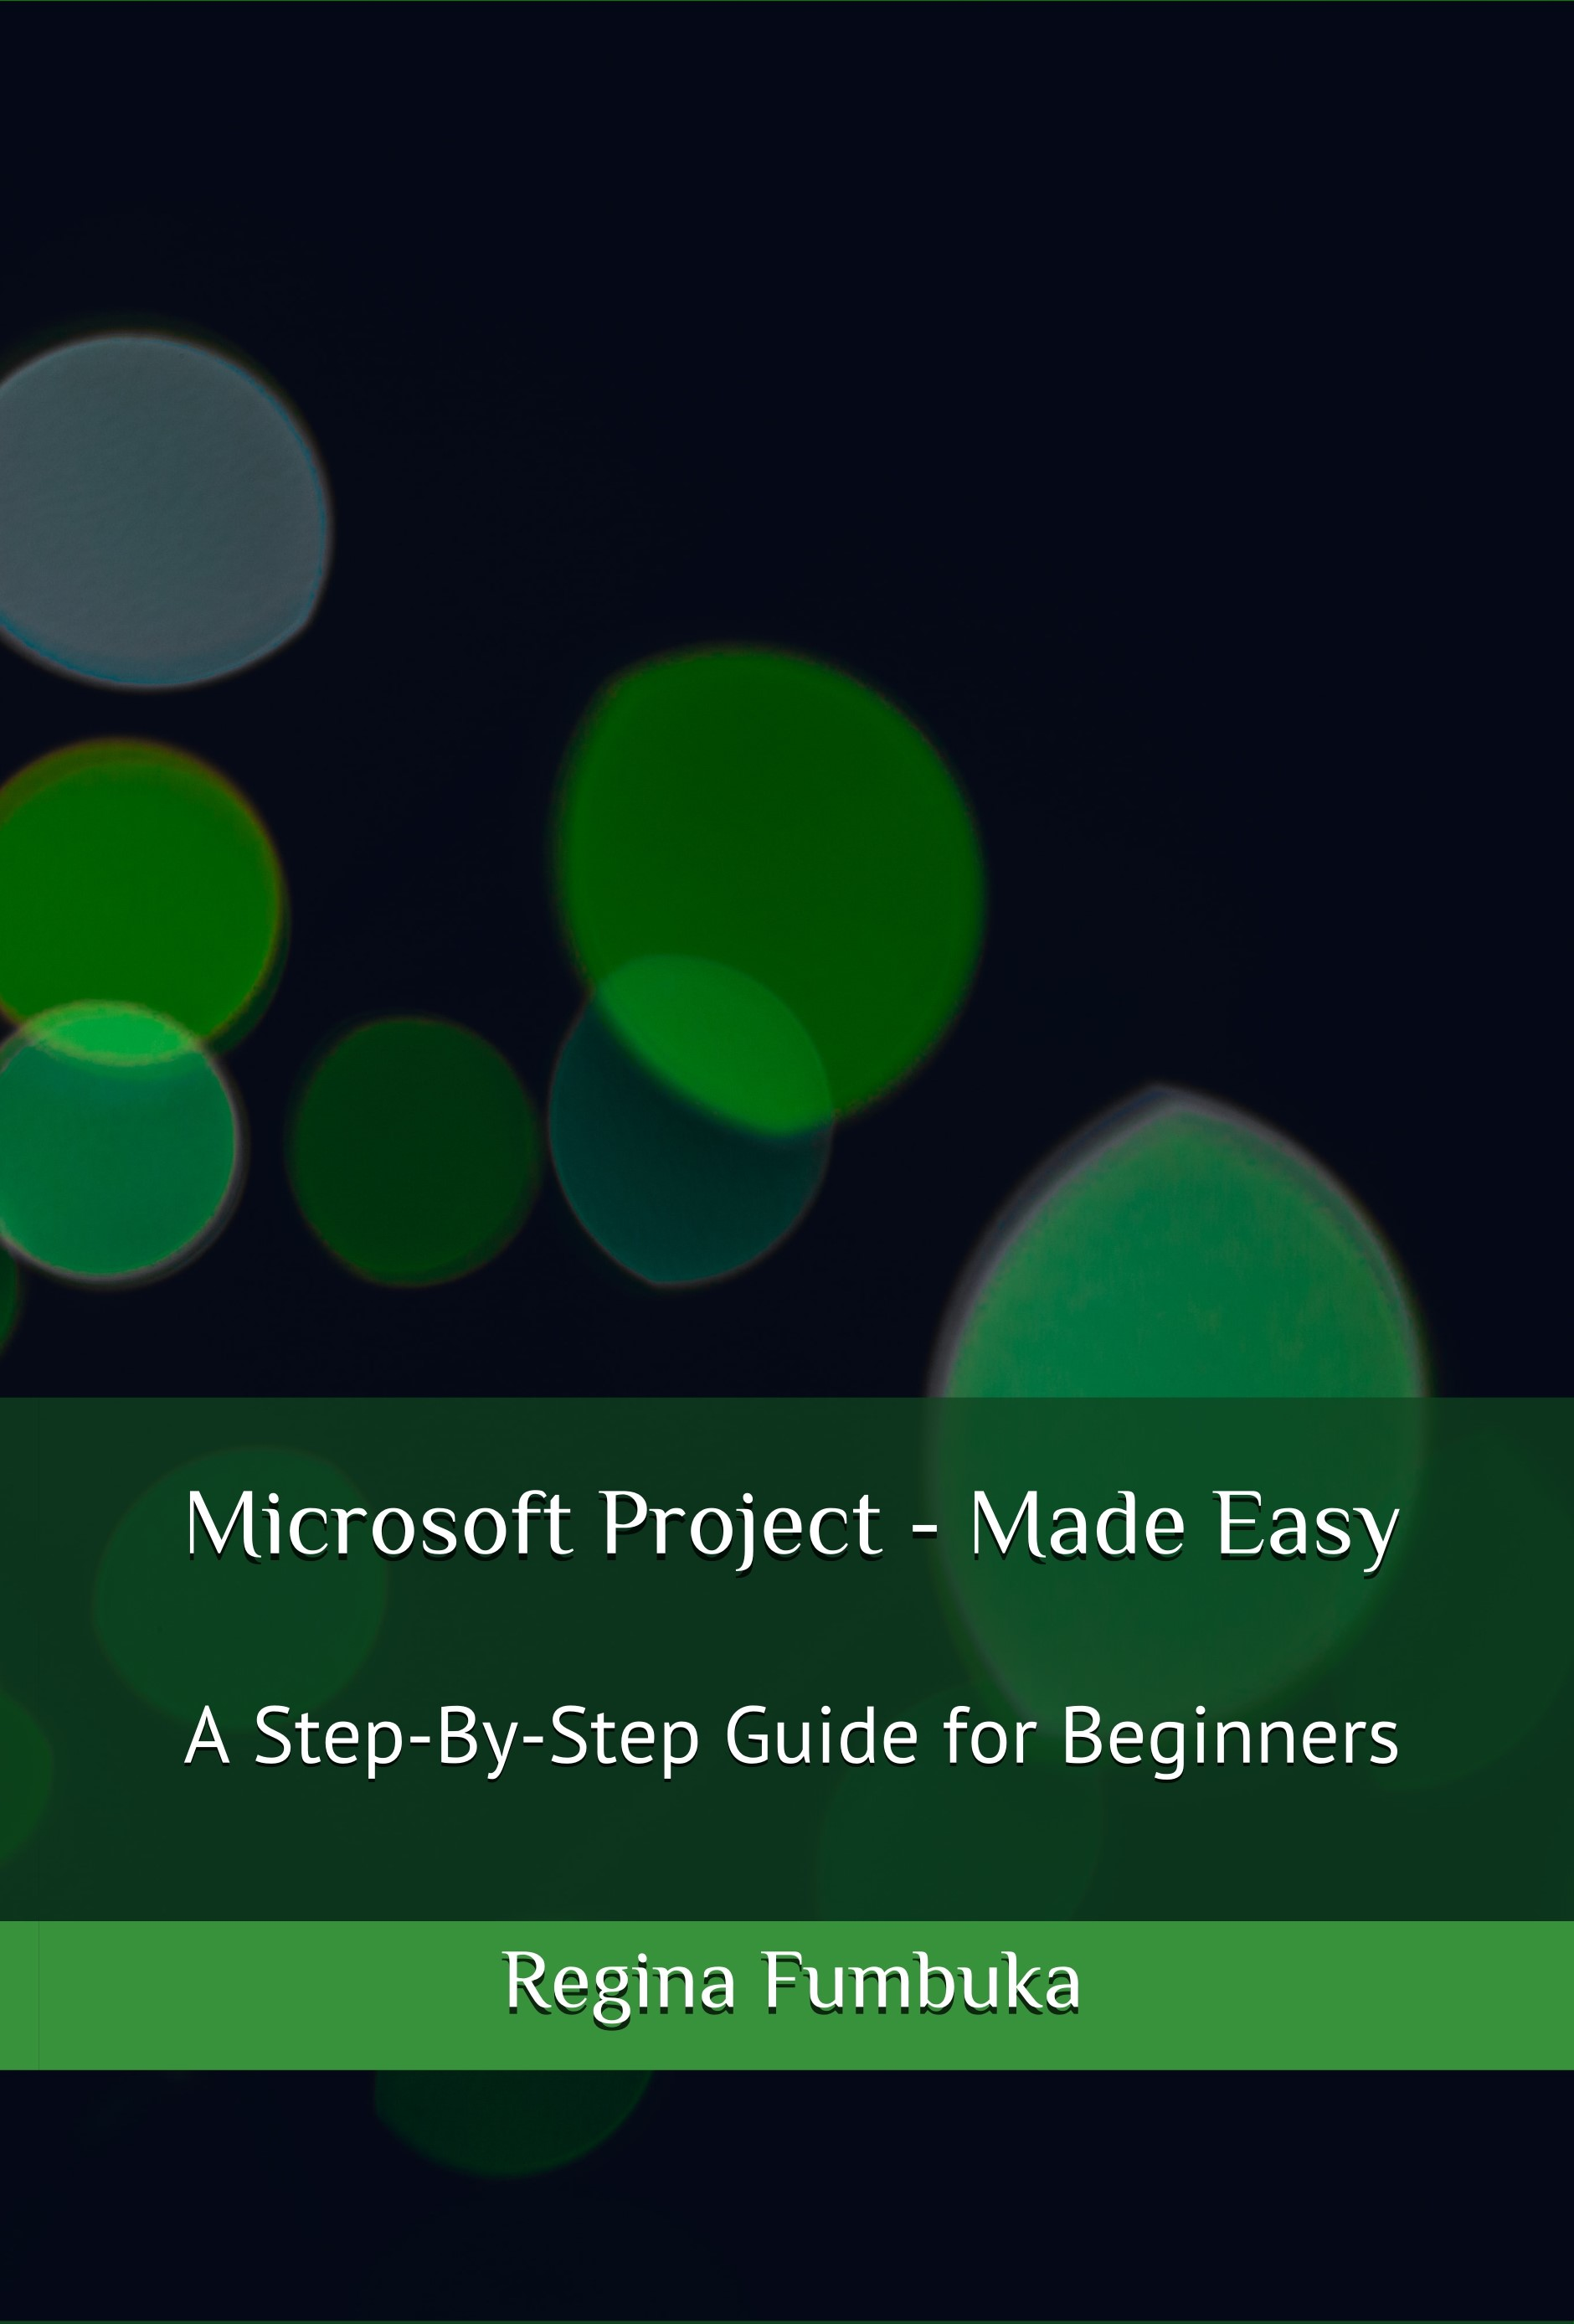 Microsoft Project - Made Easy